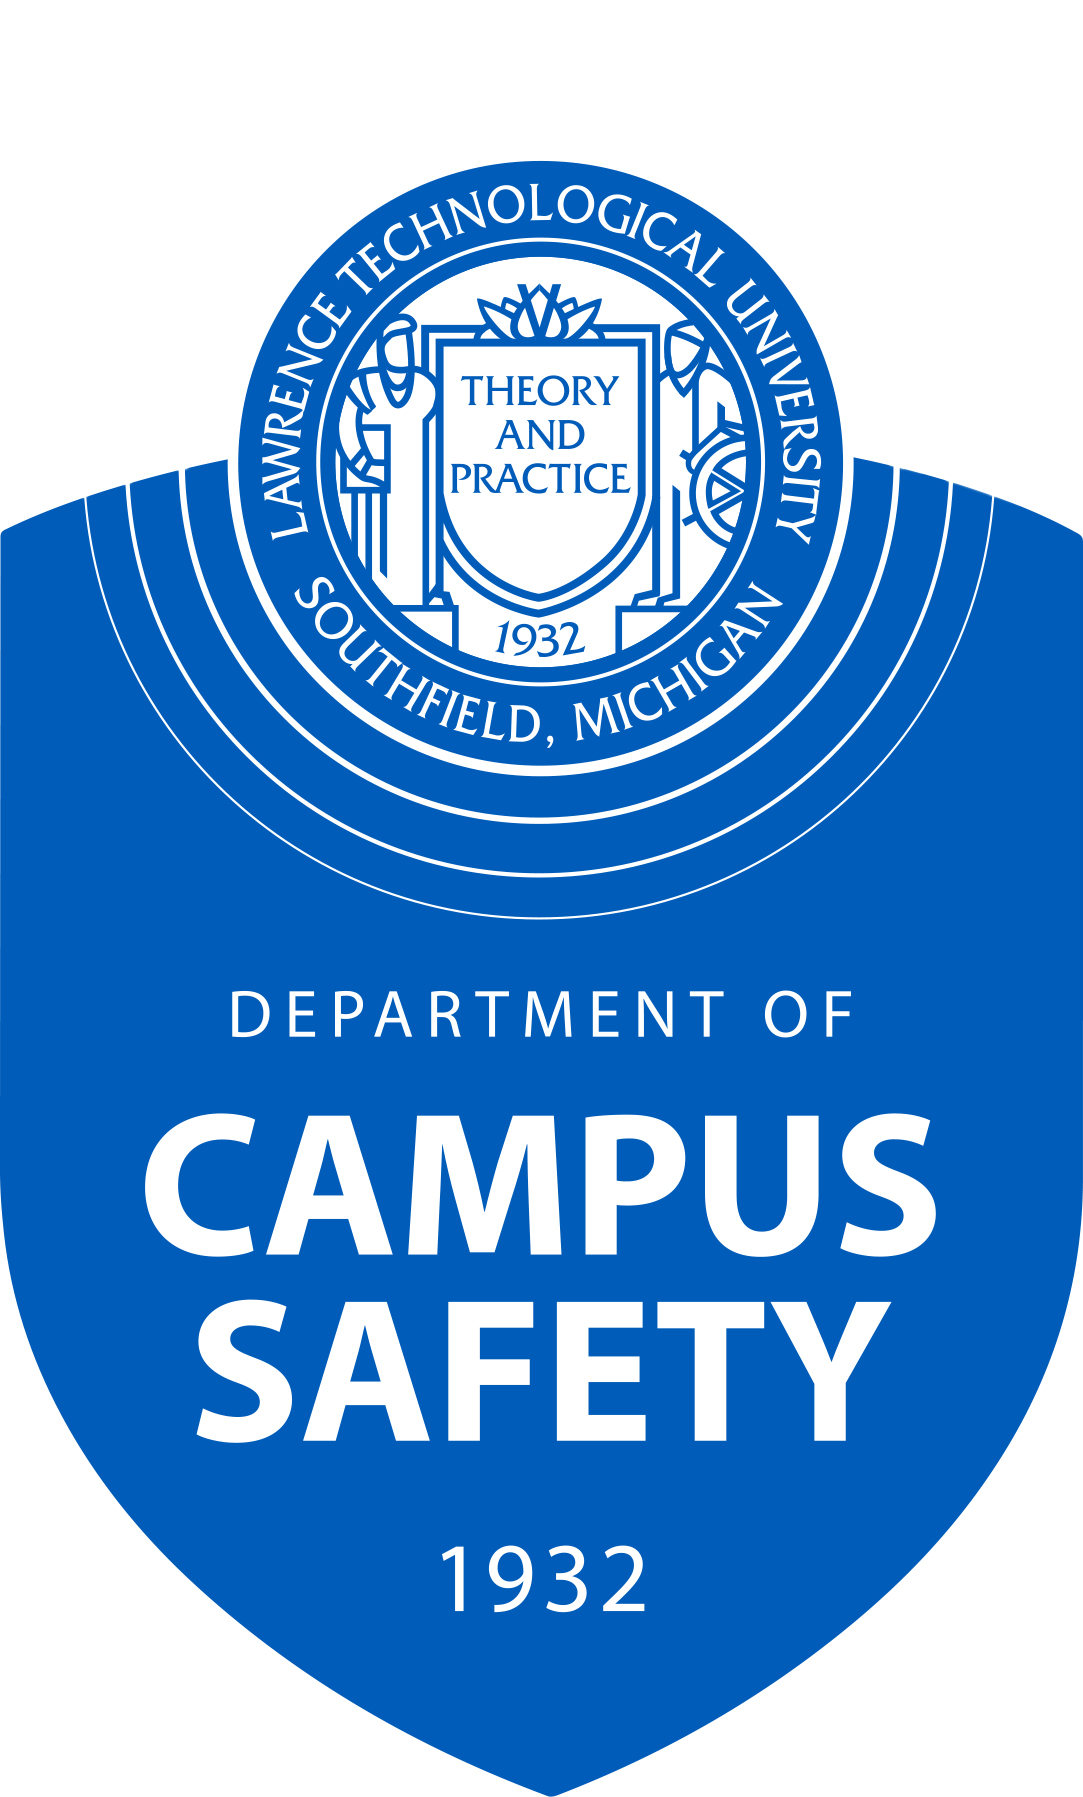 campus safety shield